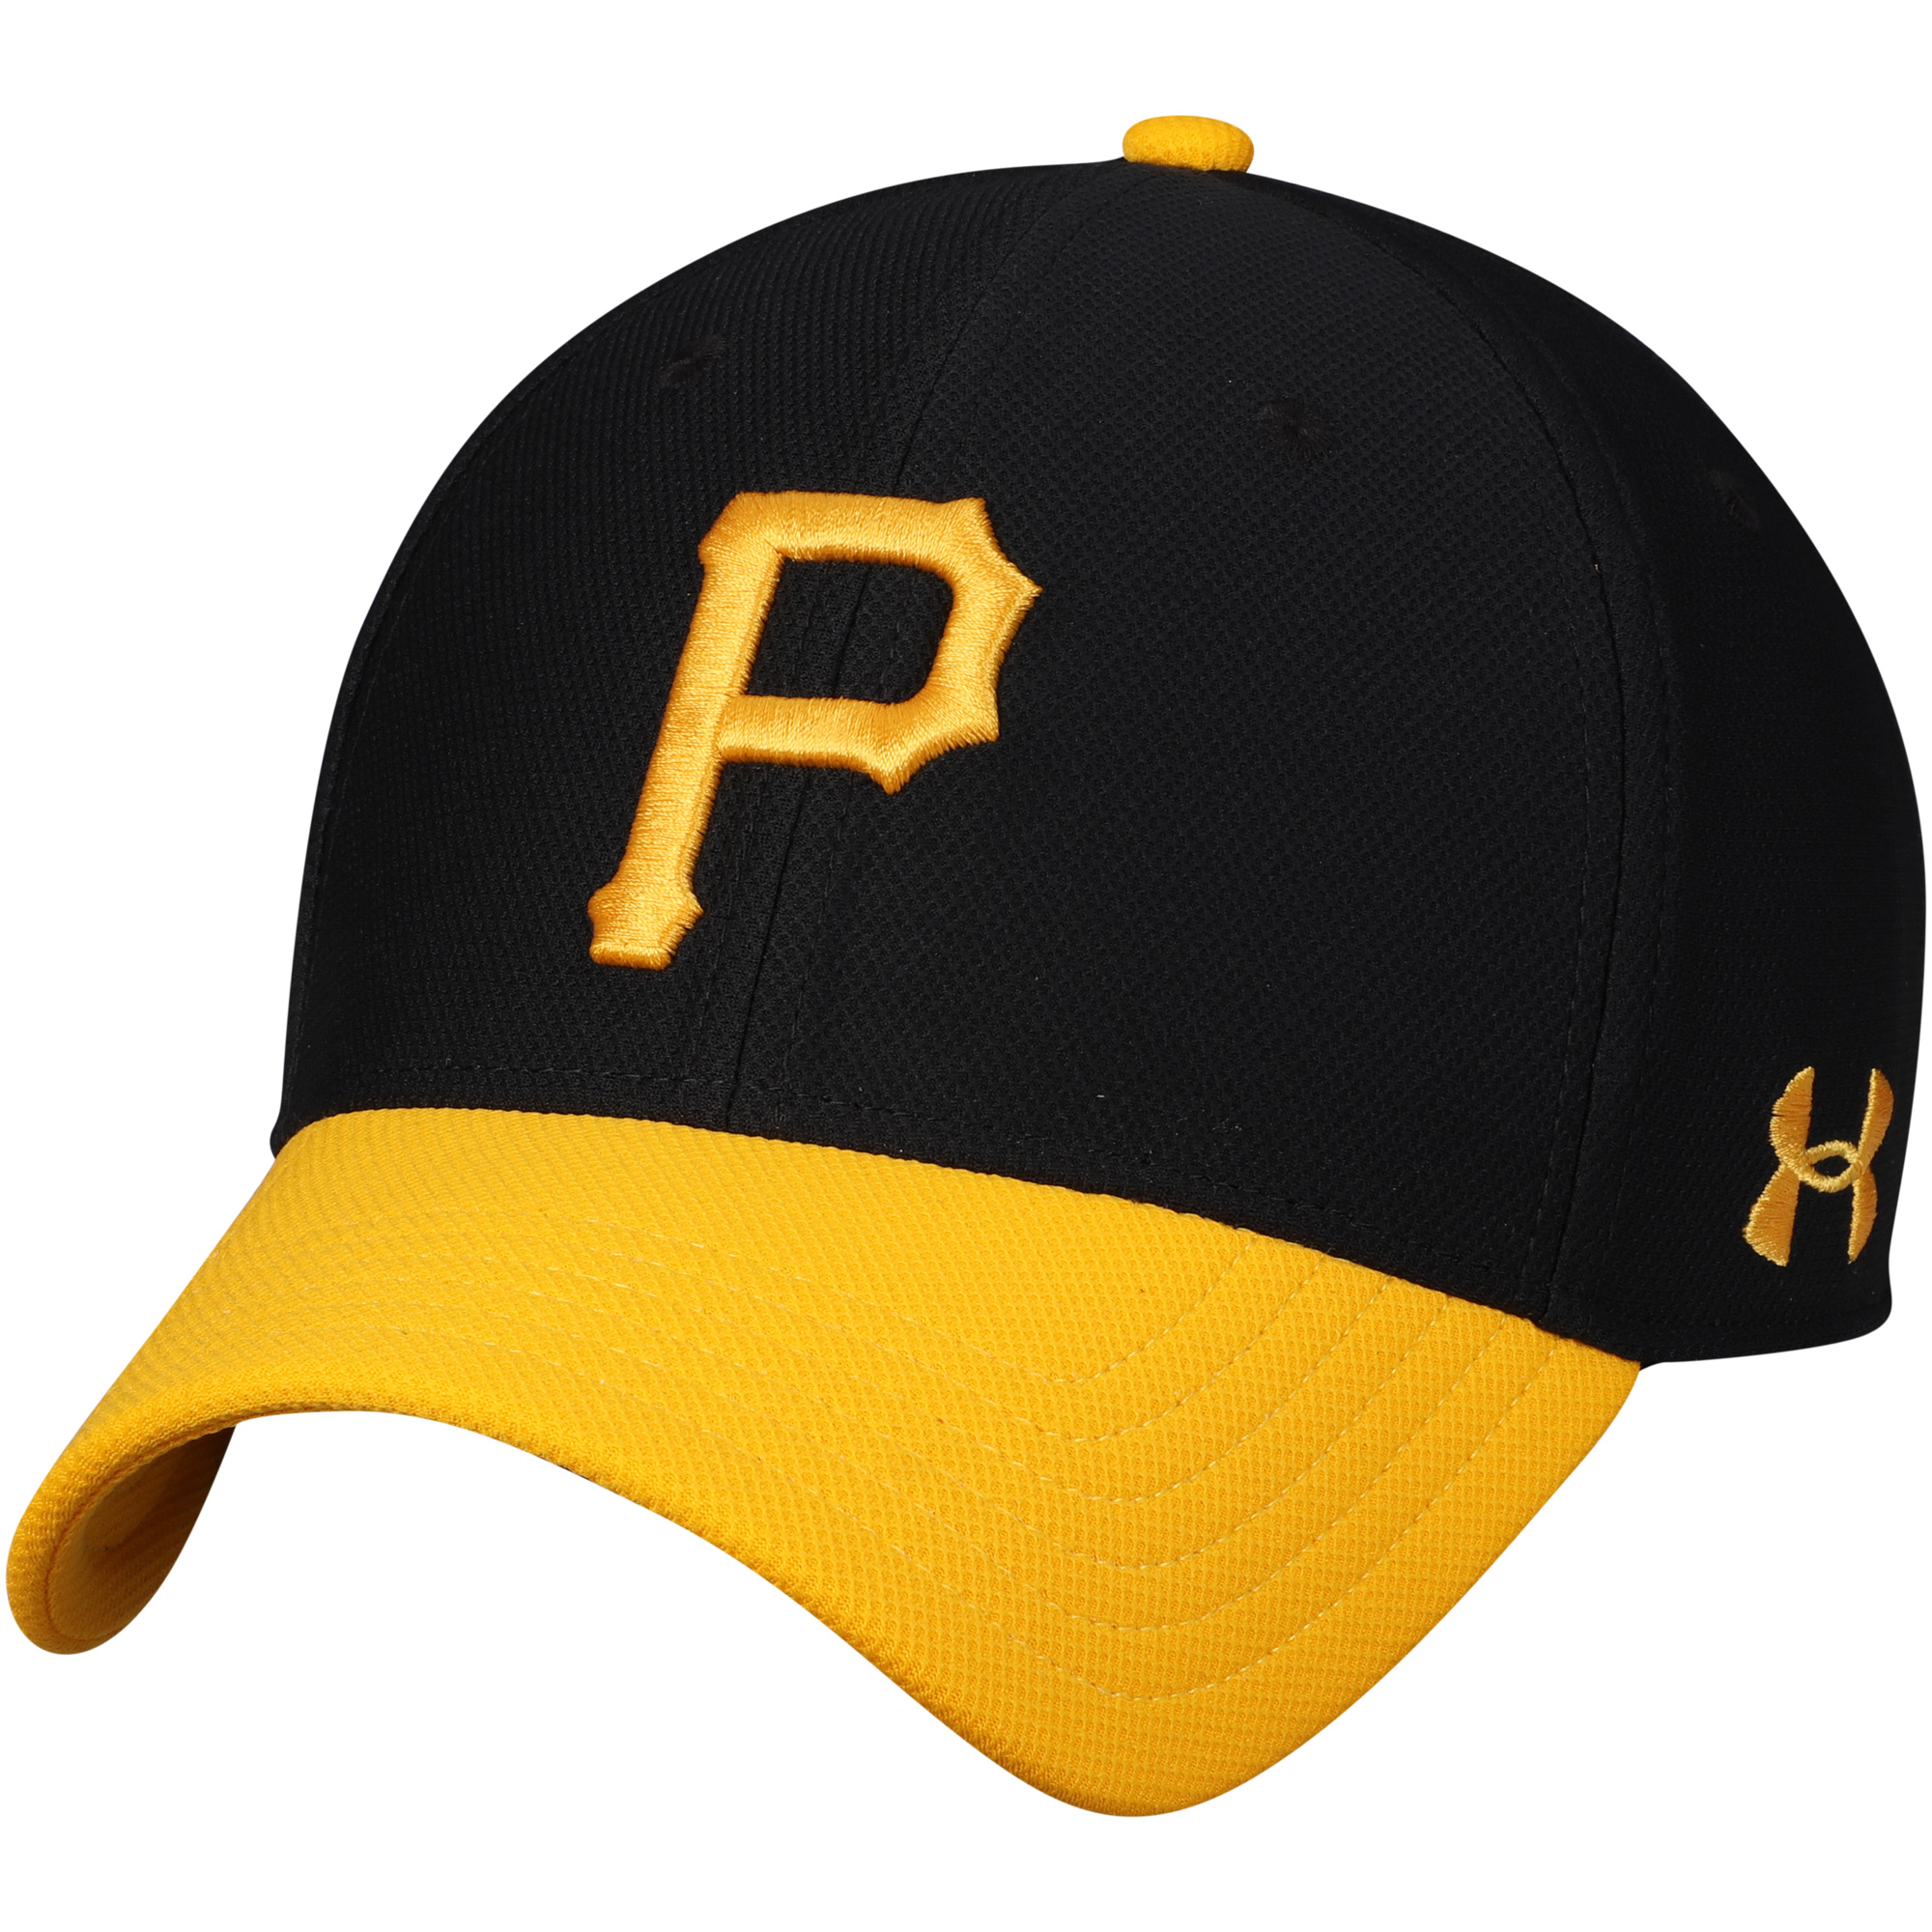 Pittsburgh Pirates Under Armour Blitzing Performance Adjustable Hat - Black/Gold - OSFA